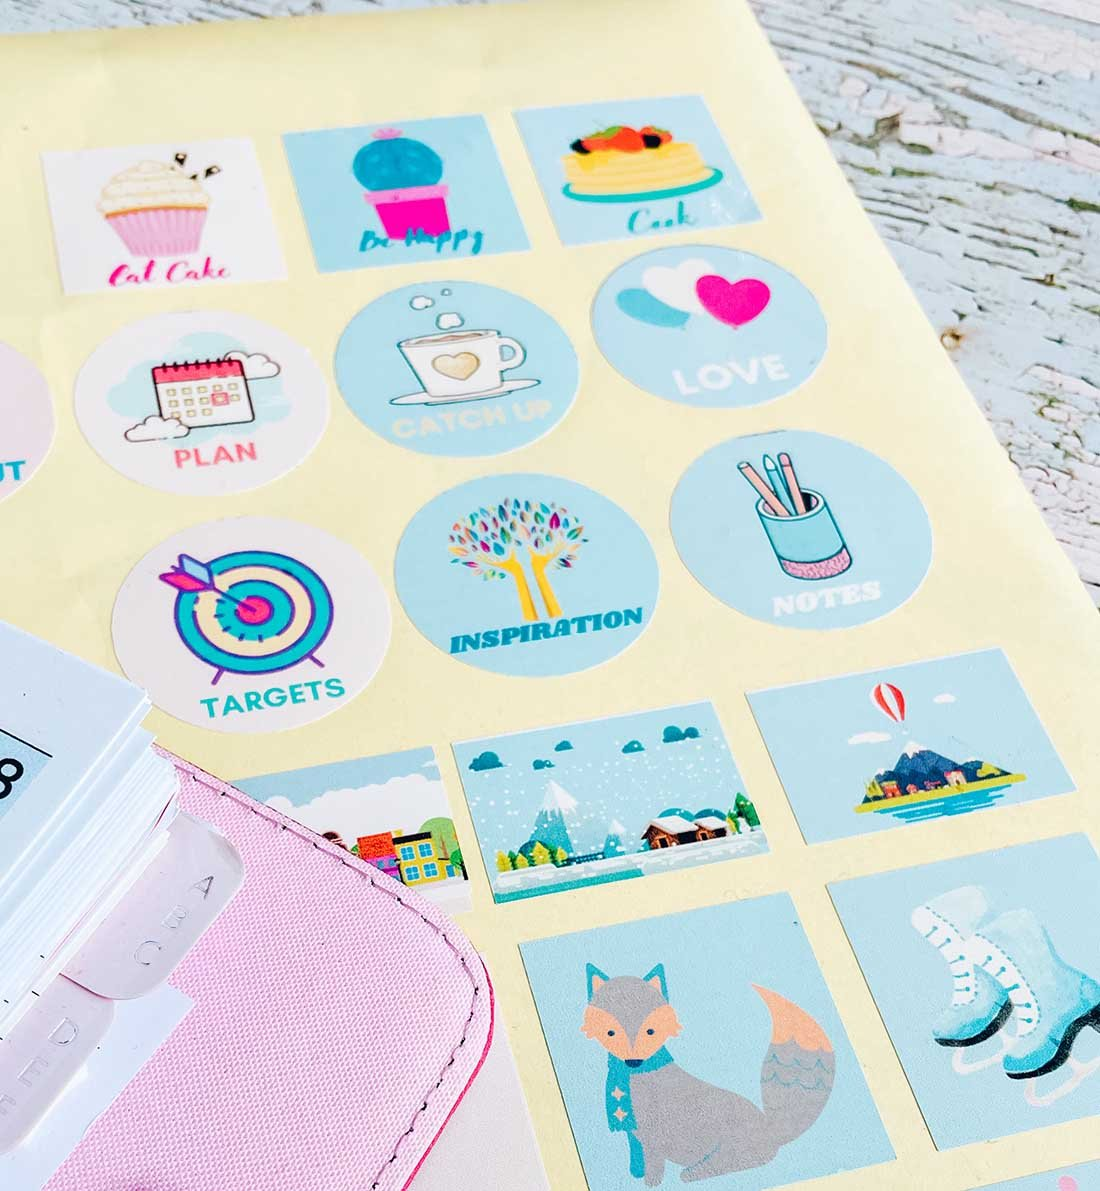 February Journal stickers for planner layouts and scrpbook pages